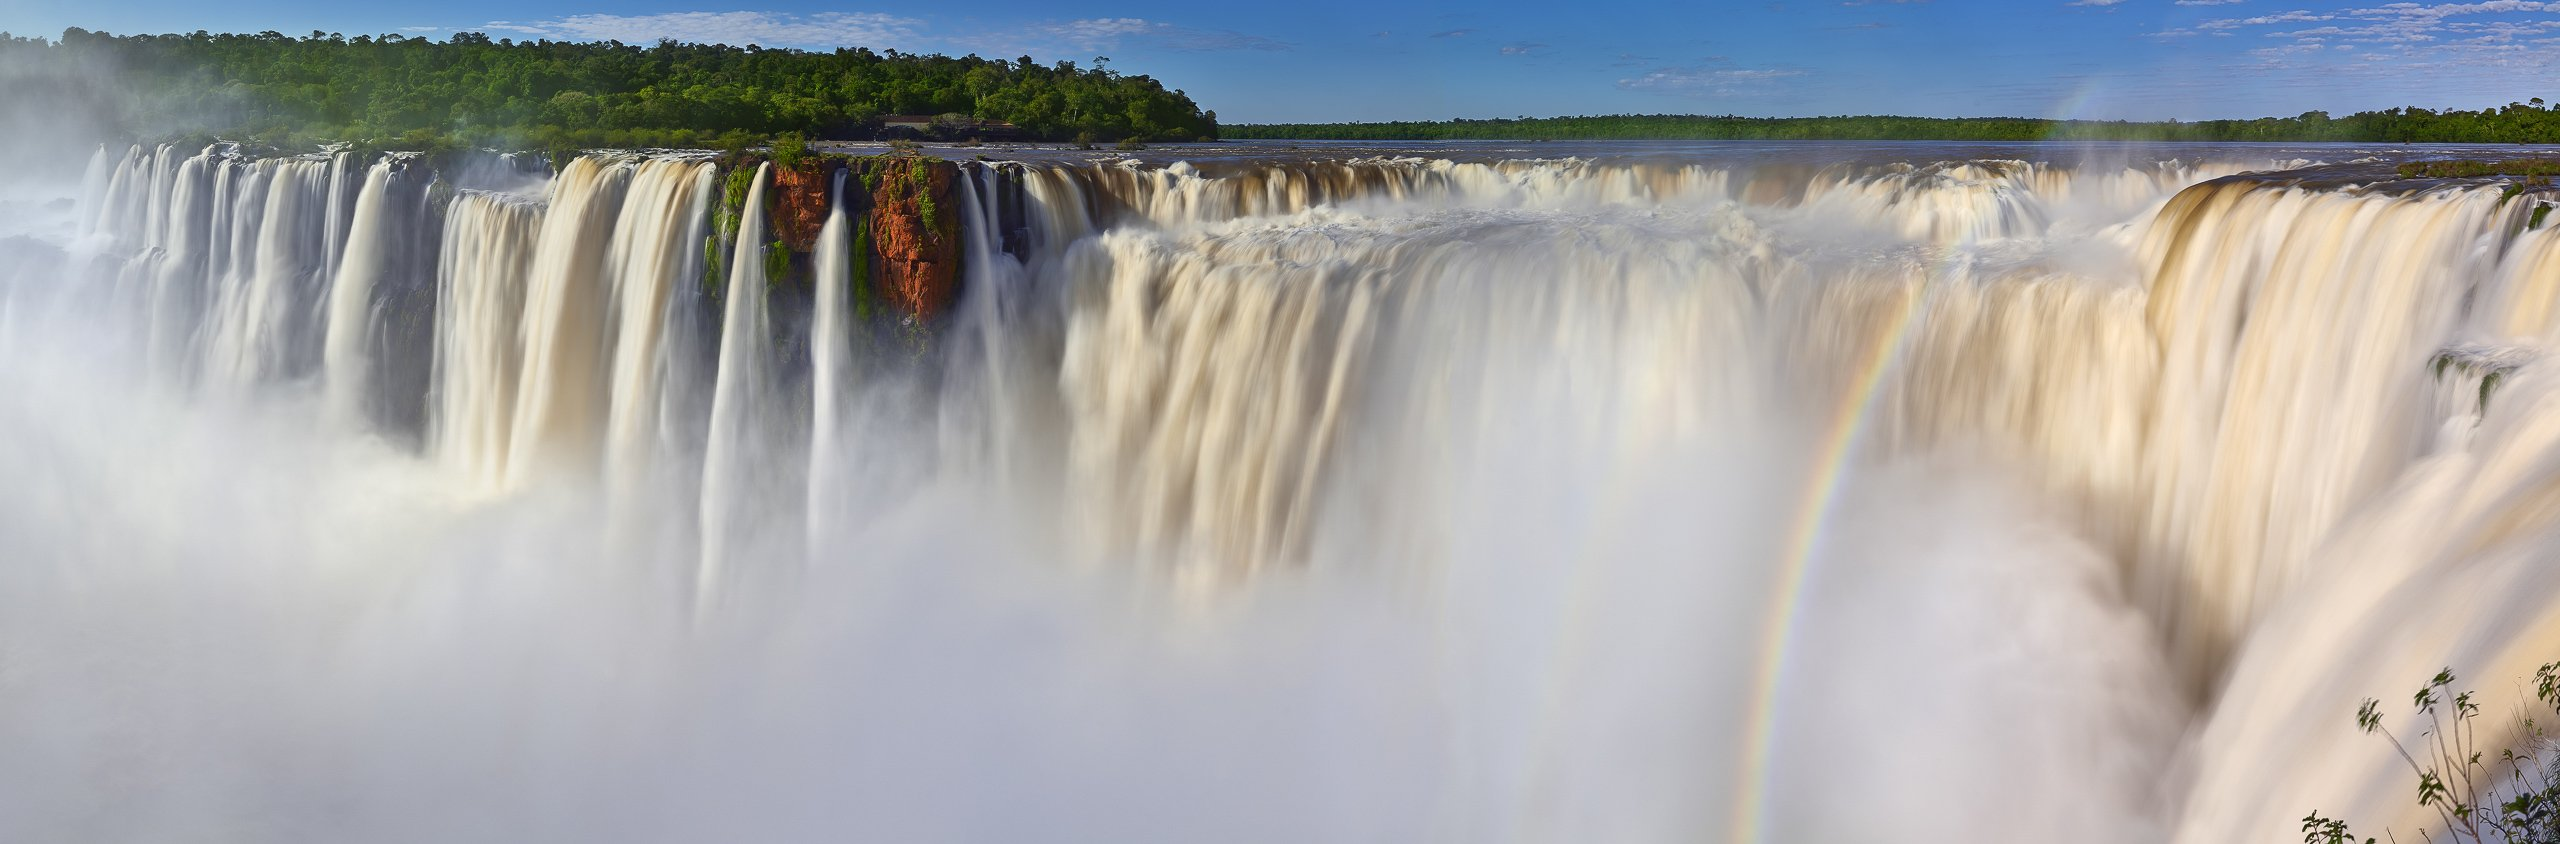 A rainbow at the base of Iguazu Falls, Argentina.